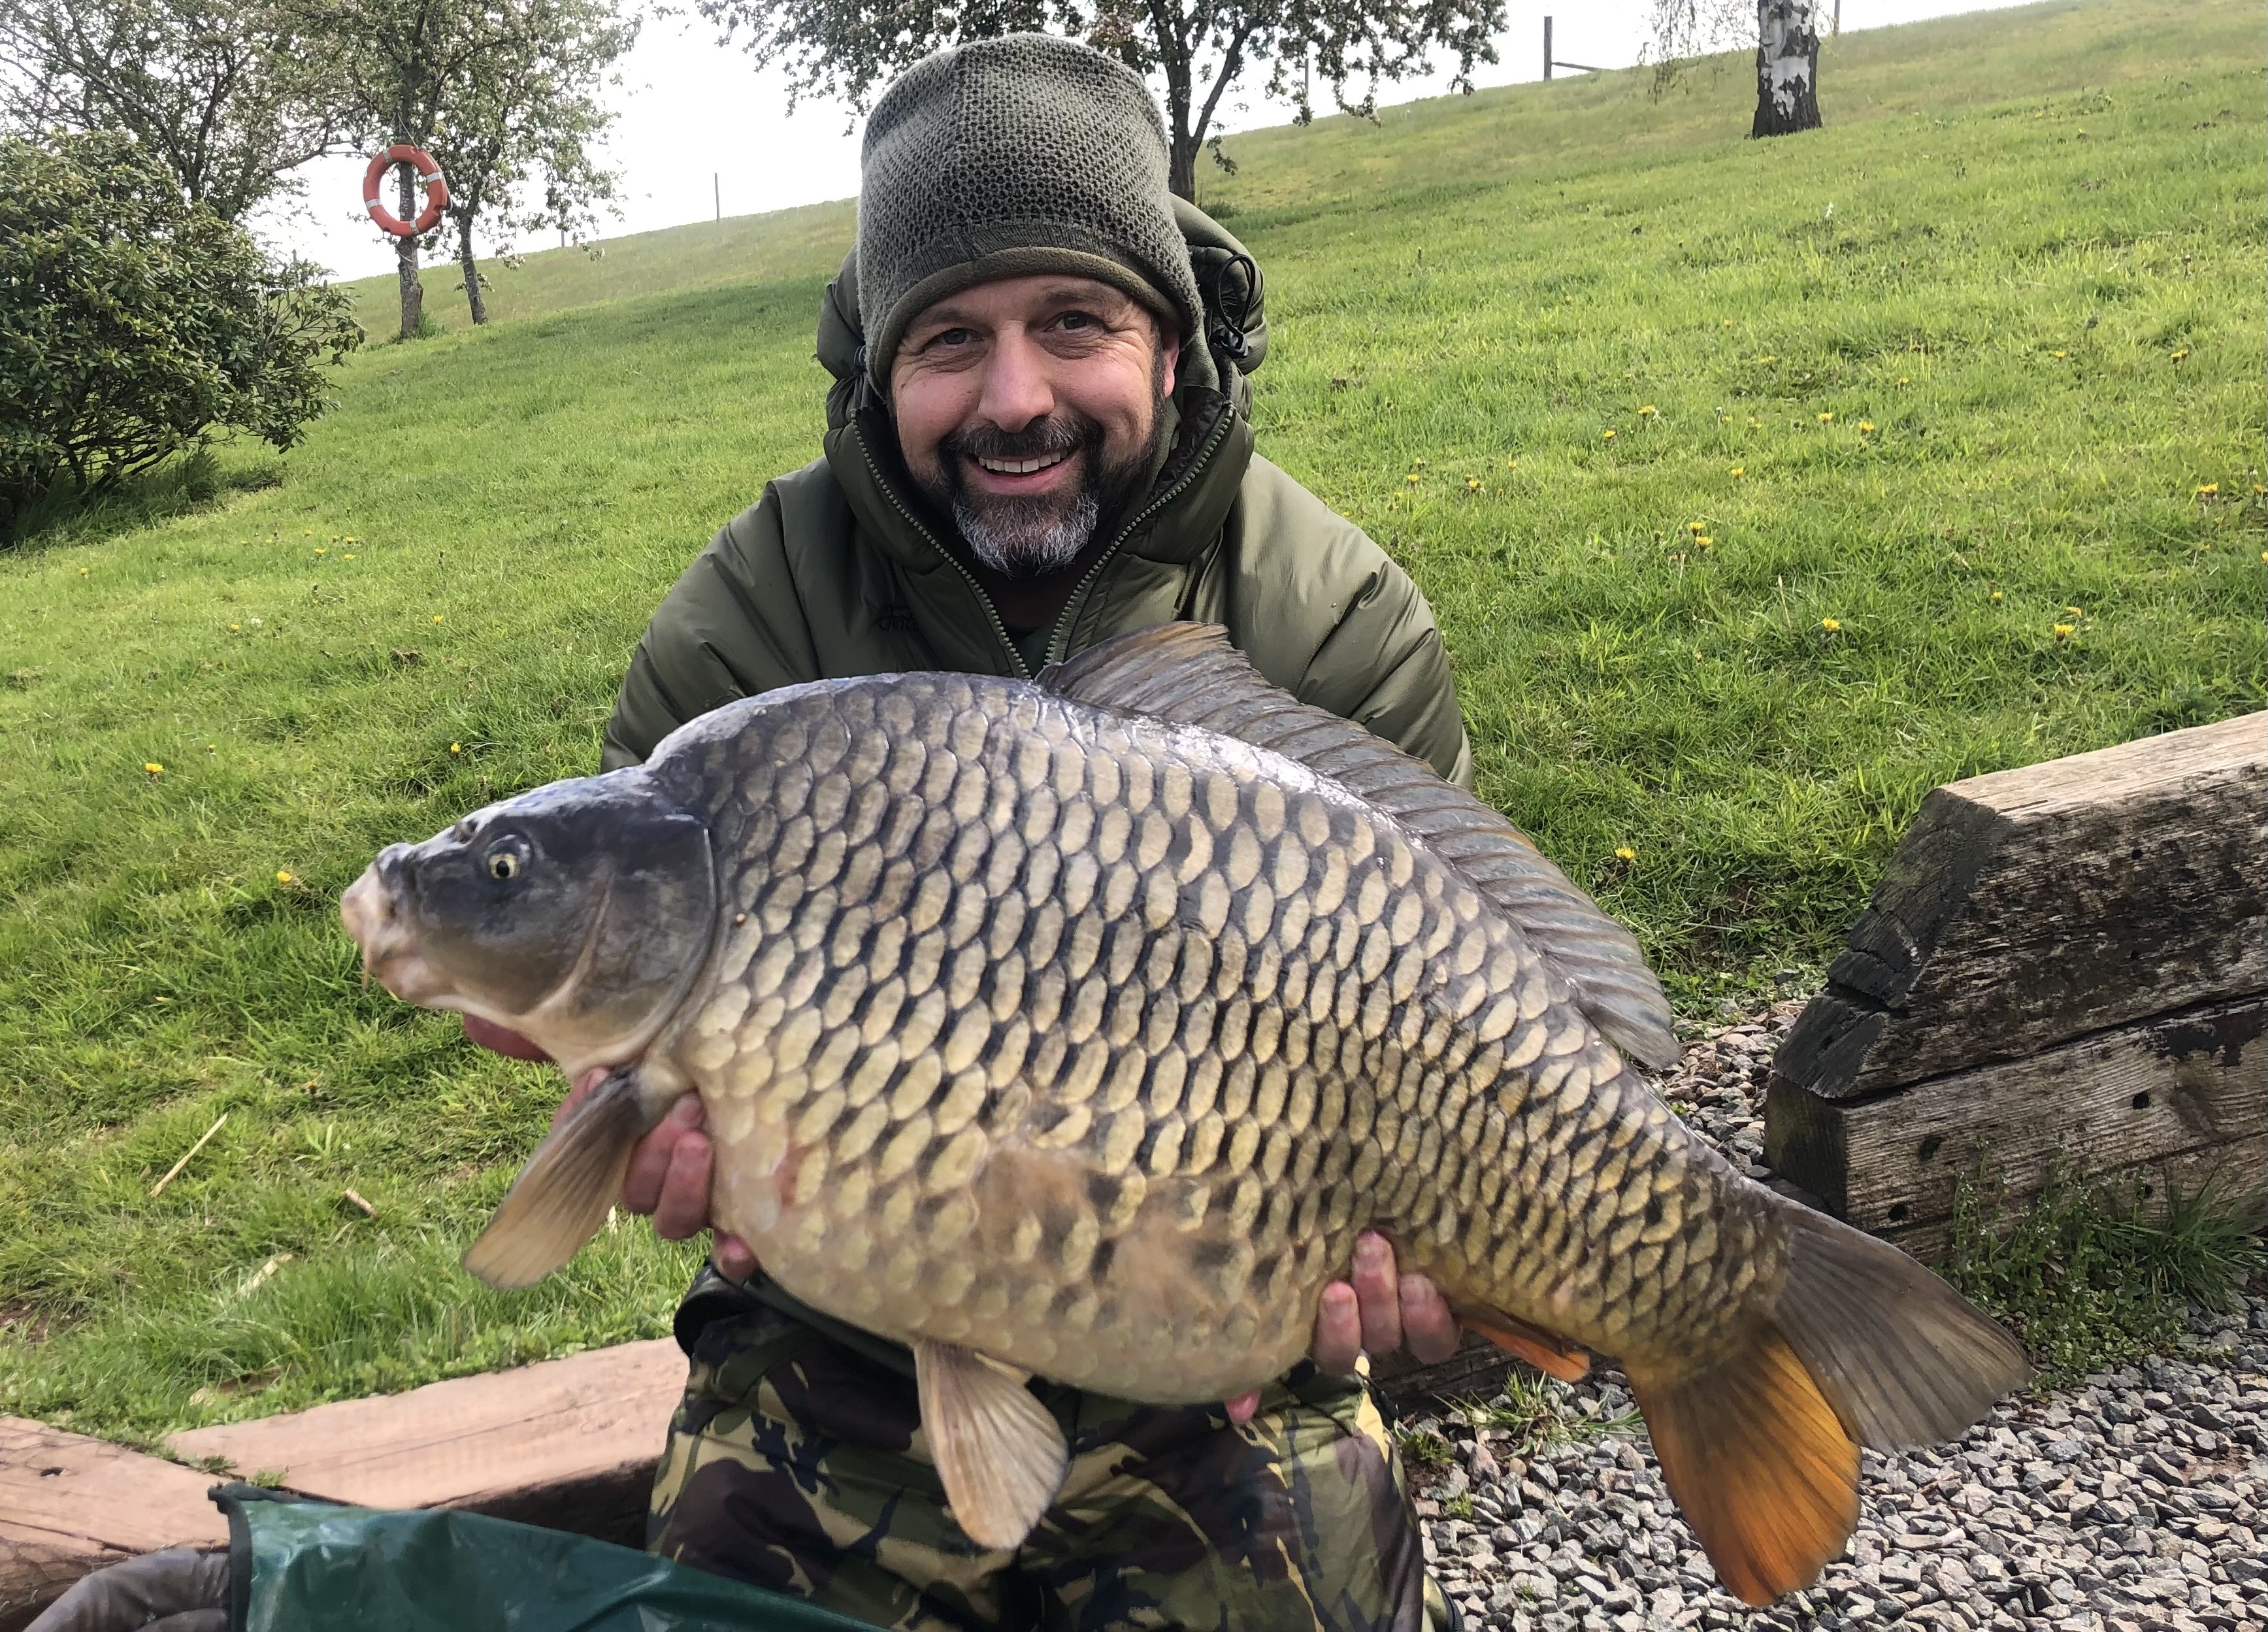 28-00 caught on Old English Toffee